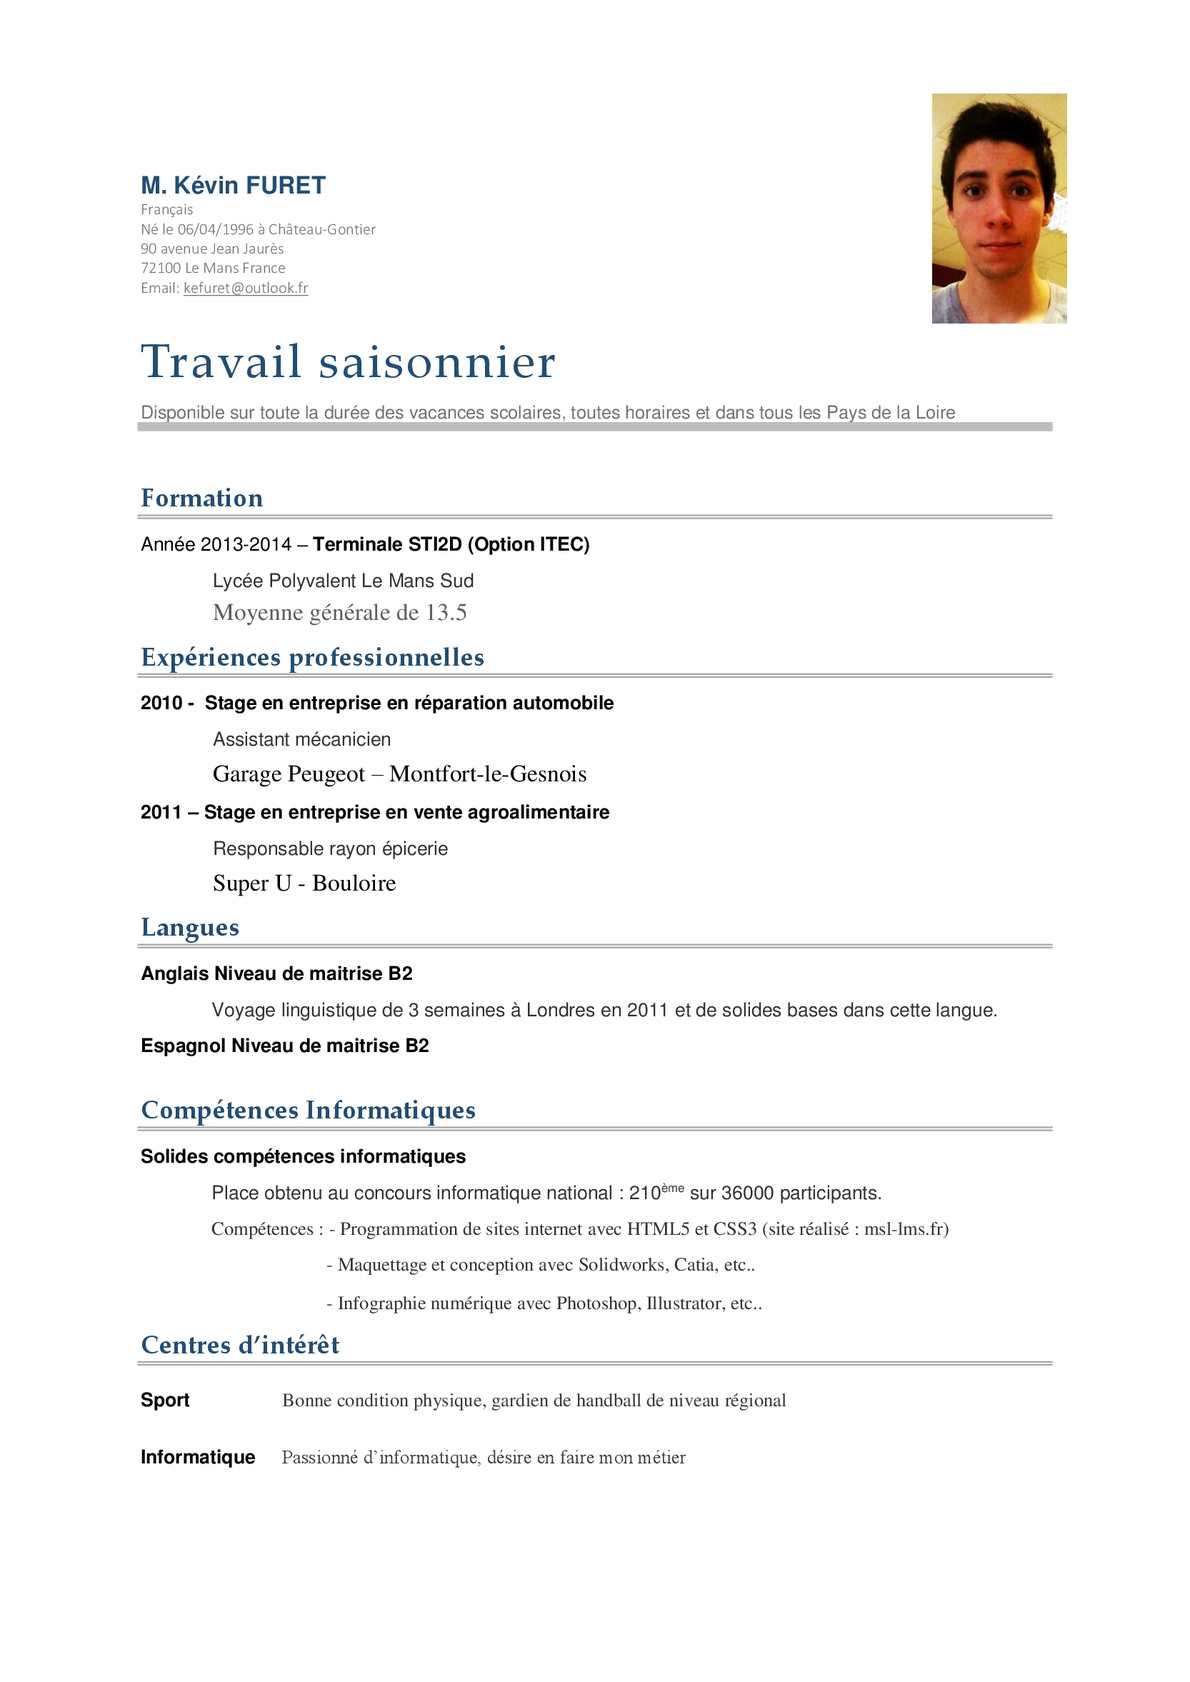 difference cv saisonnier et stage